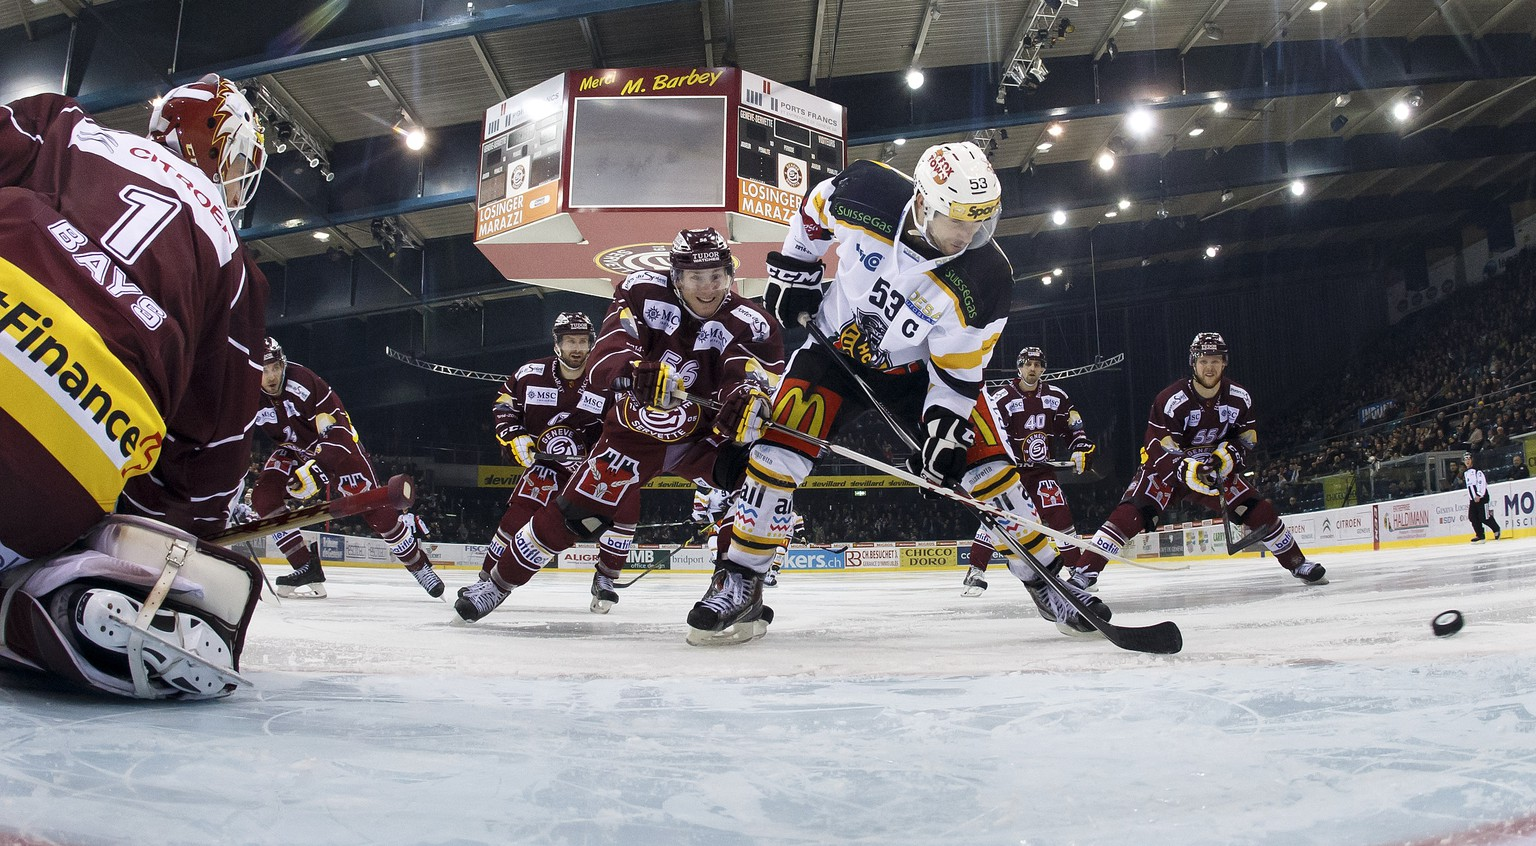 Lugano's Brett McLean, of Canada, right, missing a goal against to Geneve-Servette's goaltender Christophe Bays, left, past Geneve-Servette's Frederic Iglesias, center, during the game of National League A (NLA) Swiss Championship between Geneve-Servette HC and HC Lugano, at the ice stadium Les Vernets, in Geneva, Switzerland, Tuesday, January 20, 2015. (KEYSTONE/Salvatore Di Nolfi)